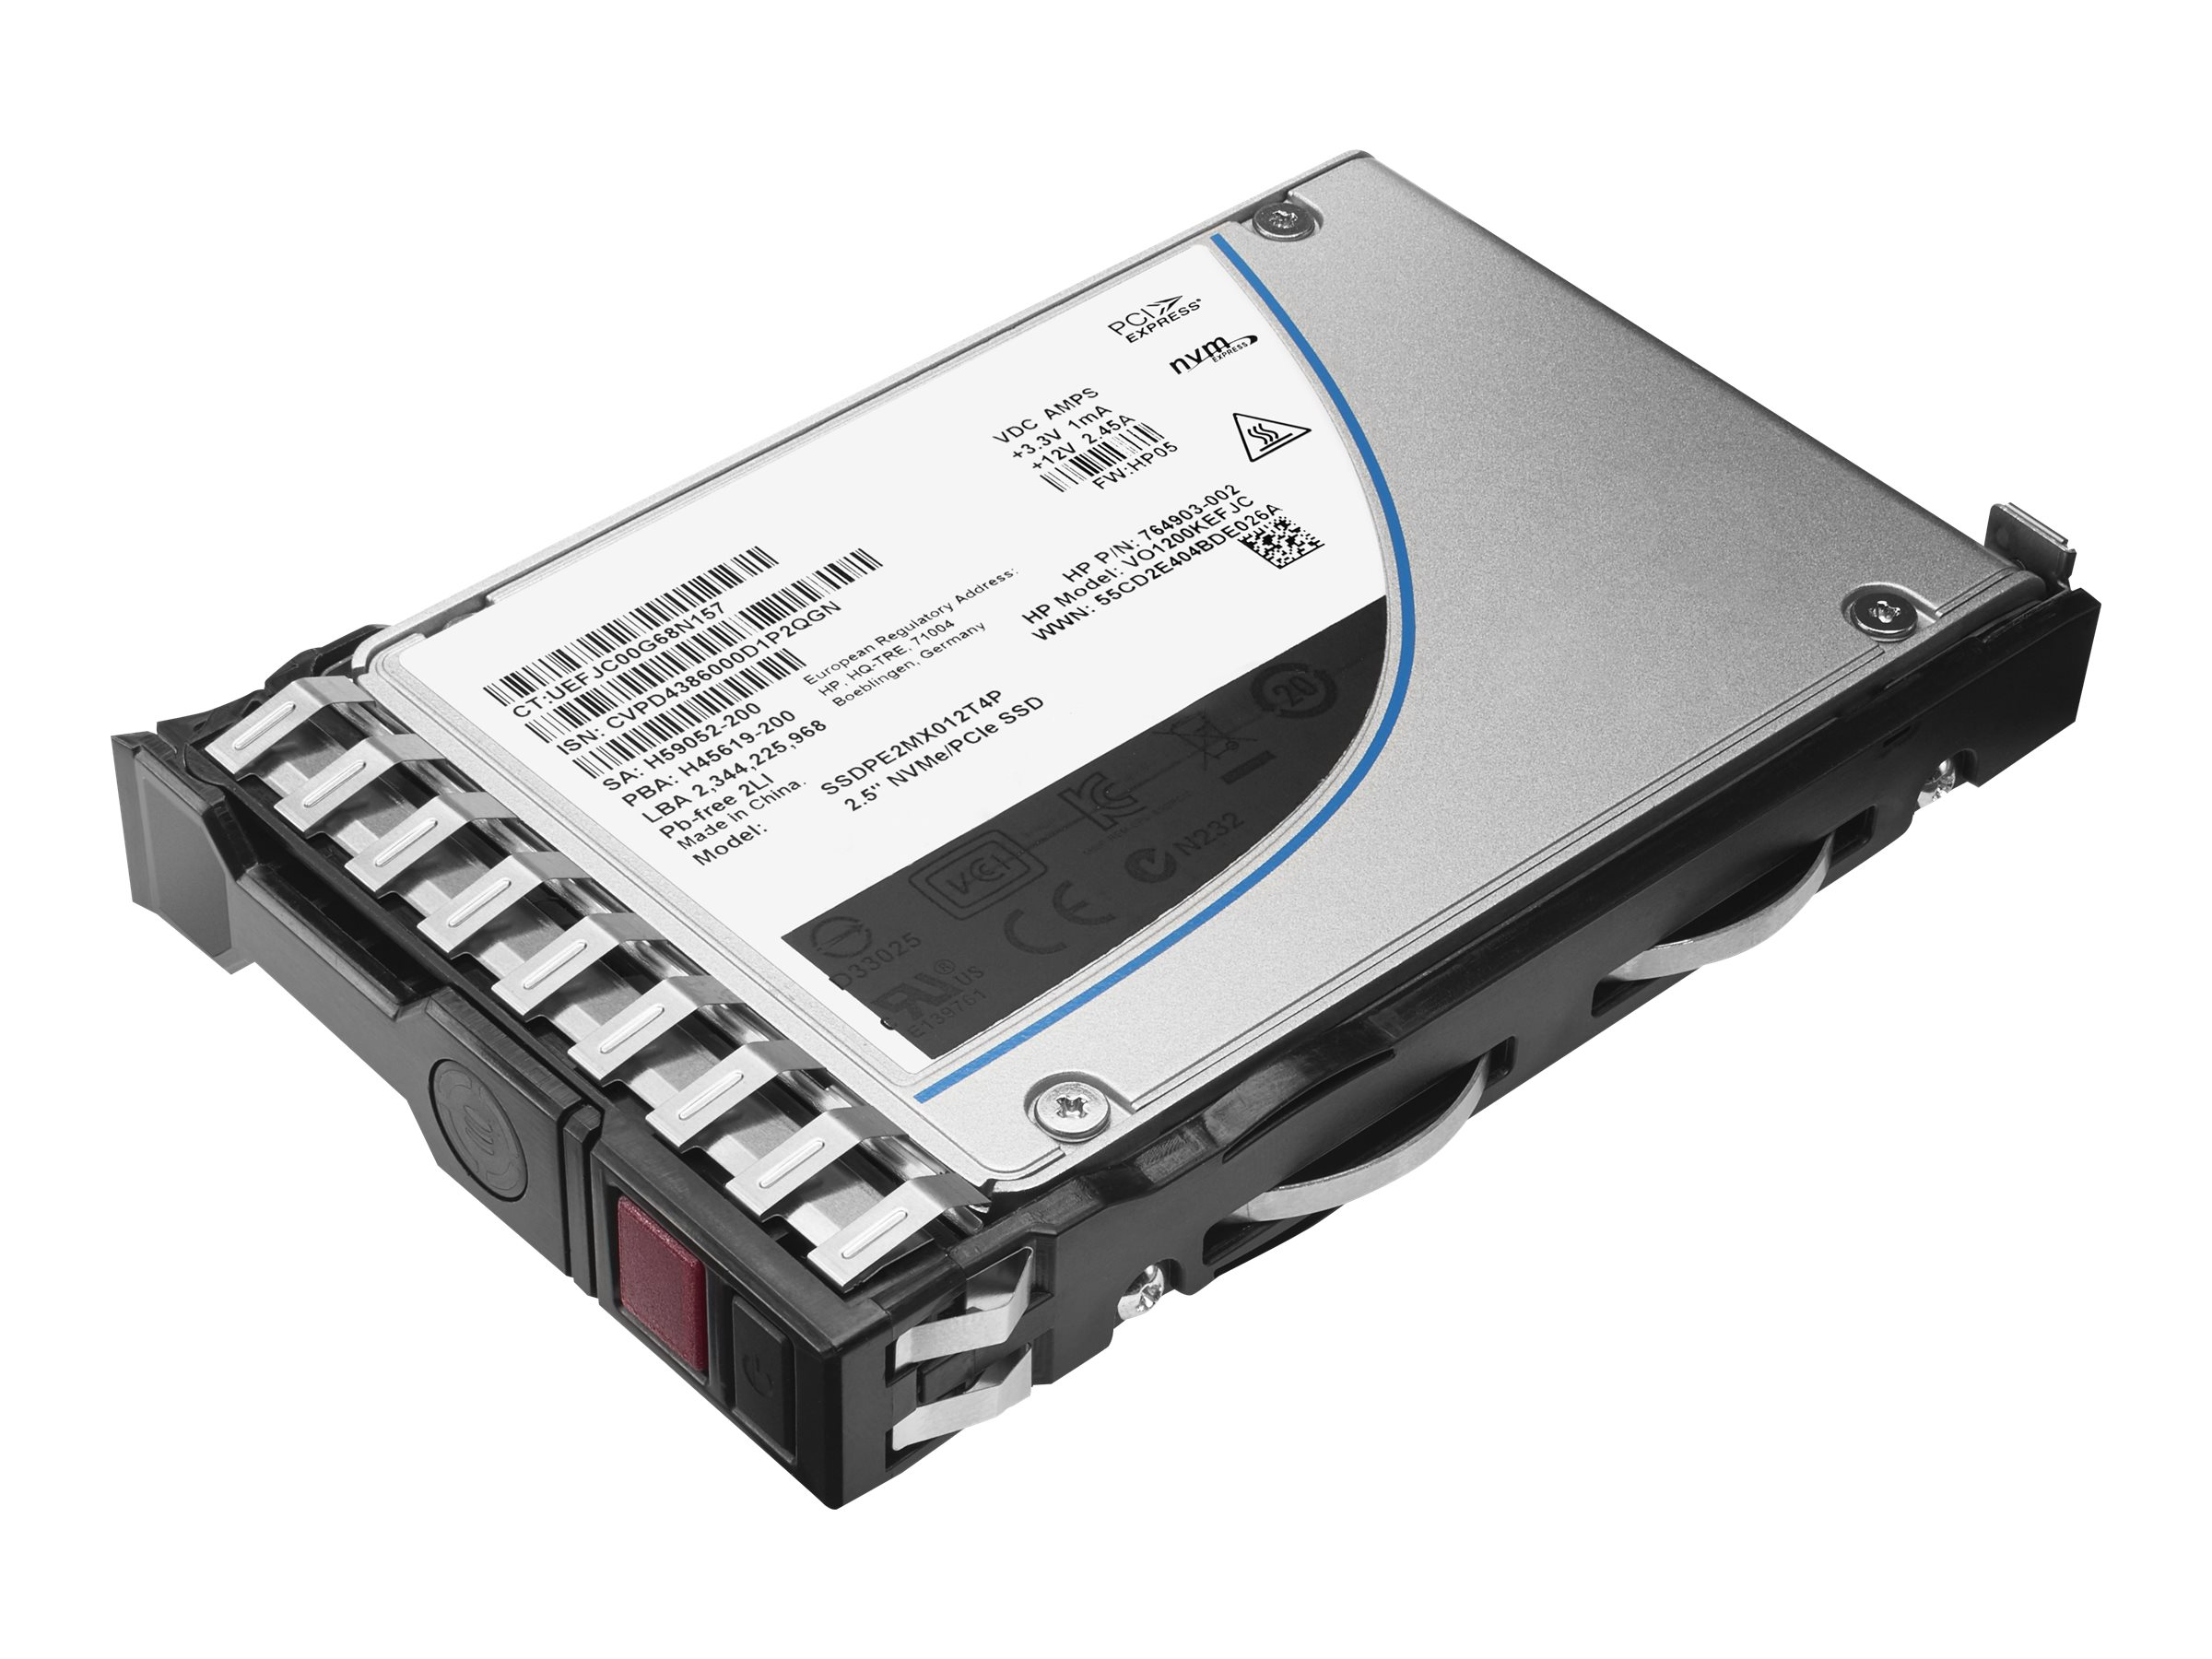 HPE 400GB SAS 12Gb s Write Intensive SFF 2.5 Hot Plug Solid State Drive for Gen8 Servers & Beyond, 802582-B21